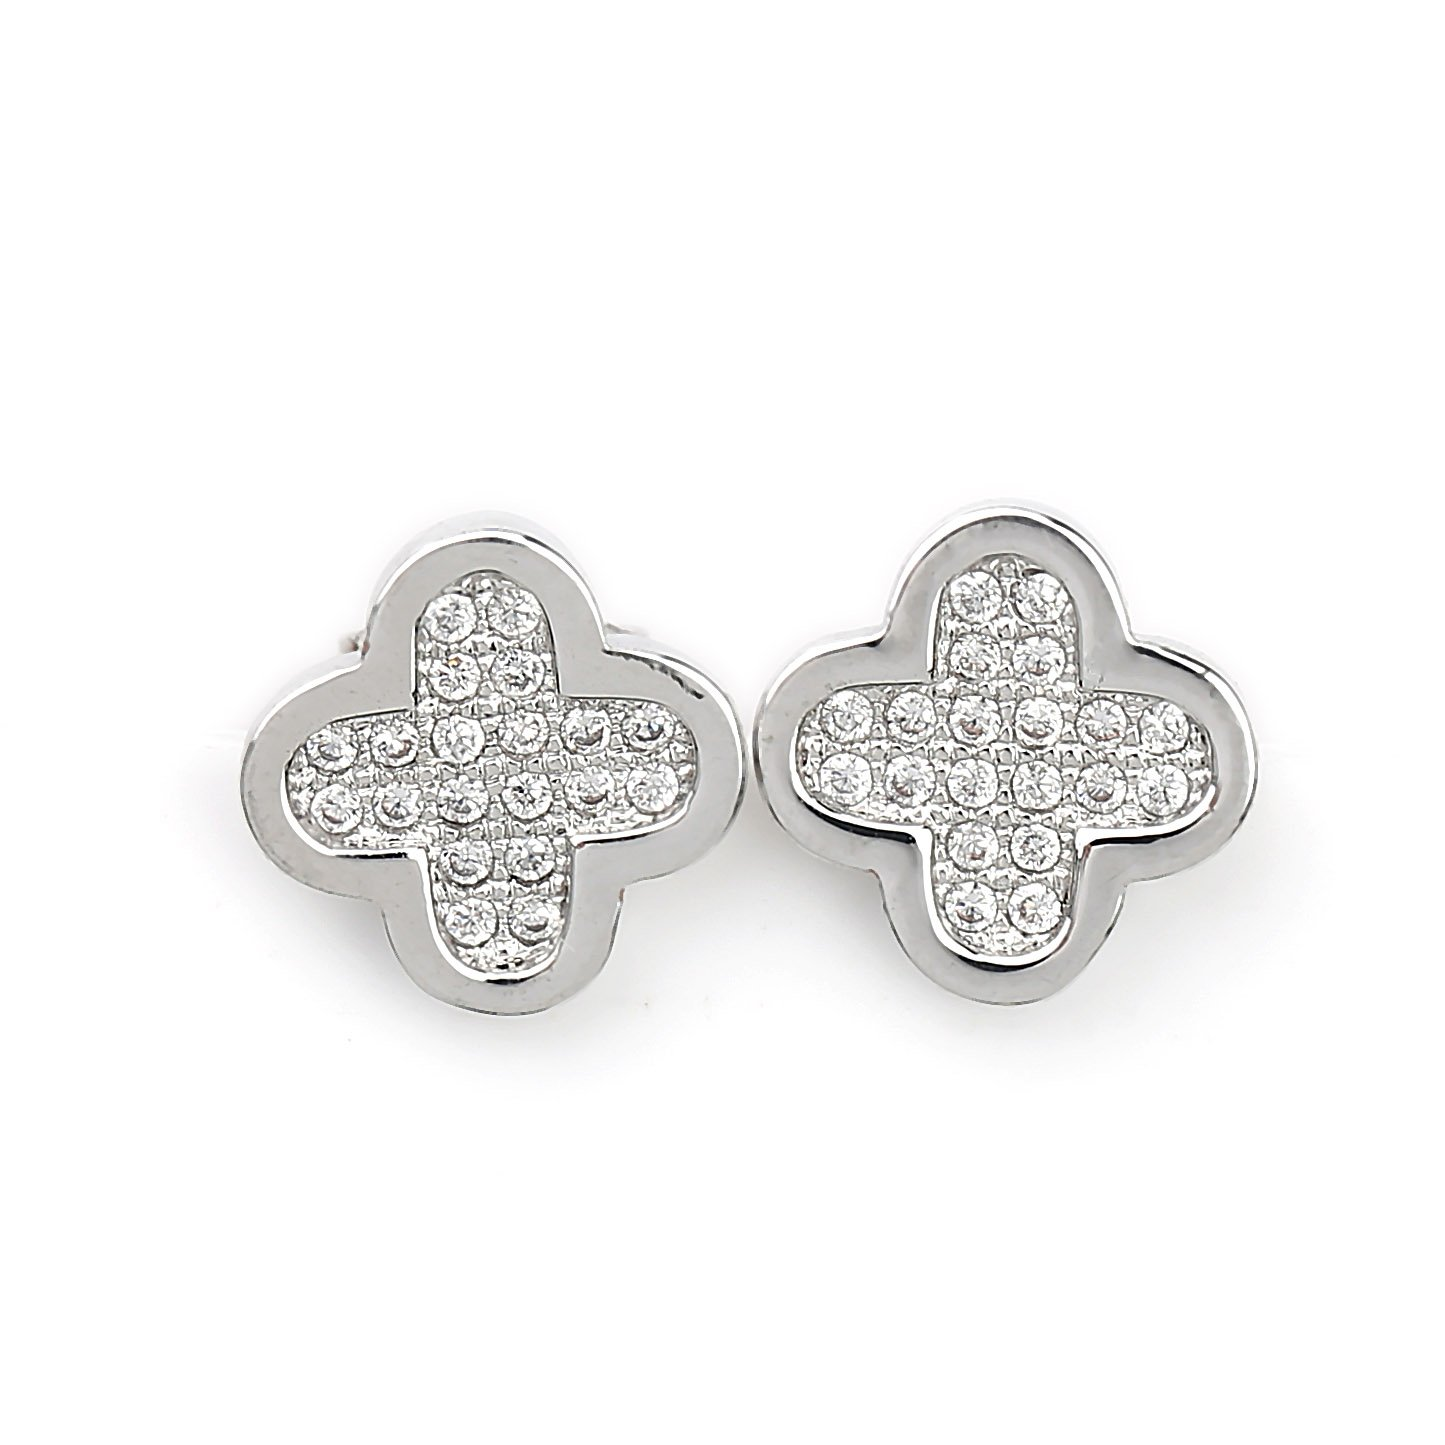 Delicate Silver (White Gold) Tone Designer Clover Earrings with Embedded Swarovski Style Crystals (Silver Clover 2)